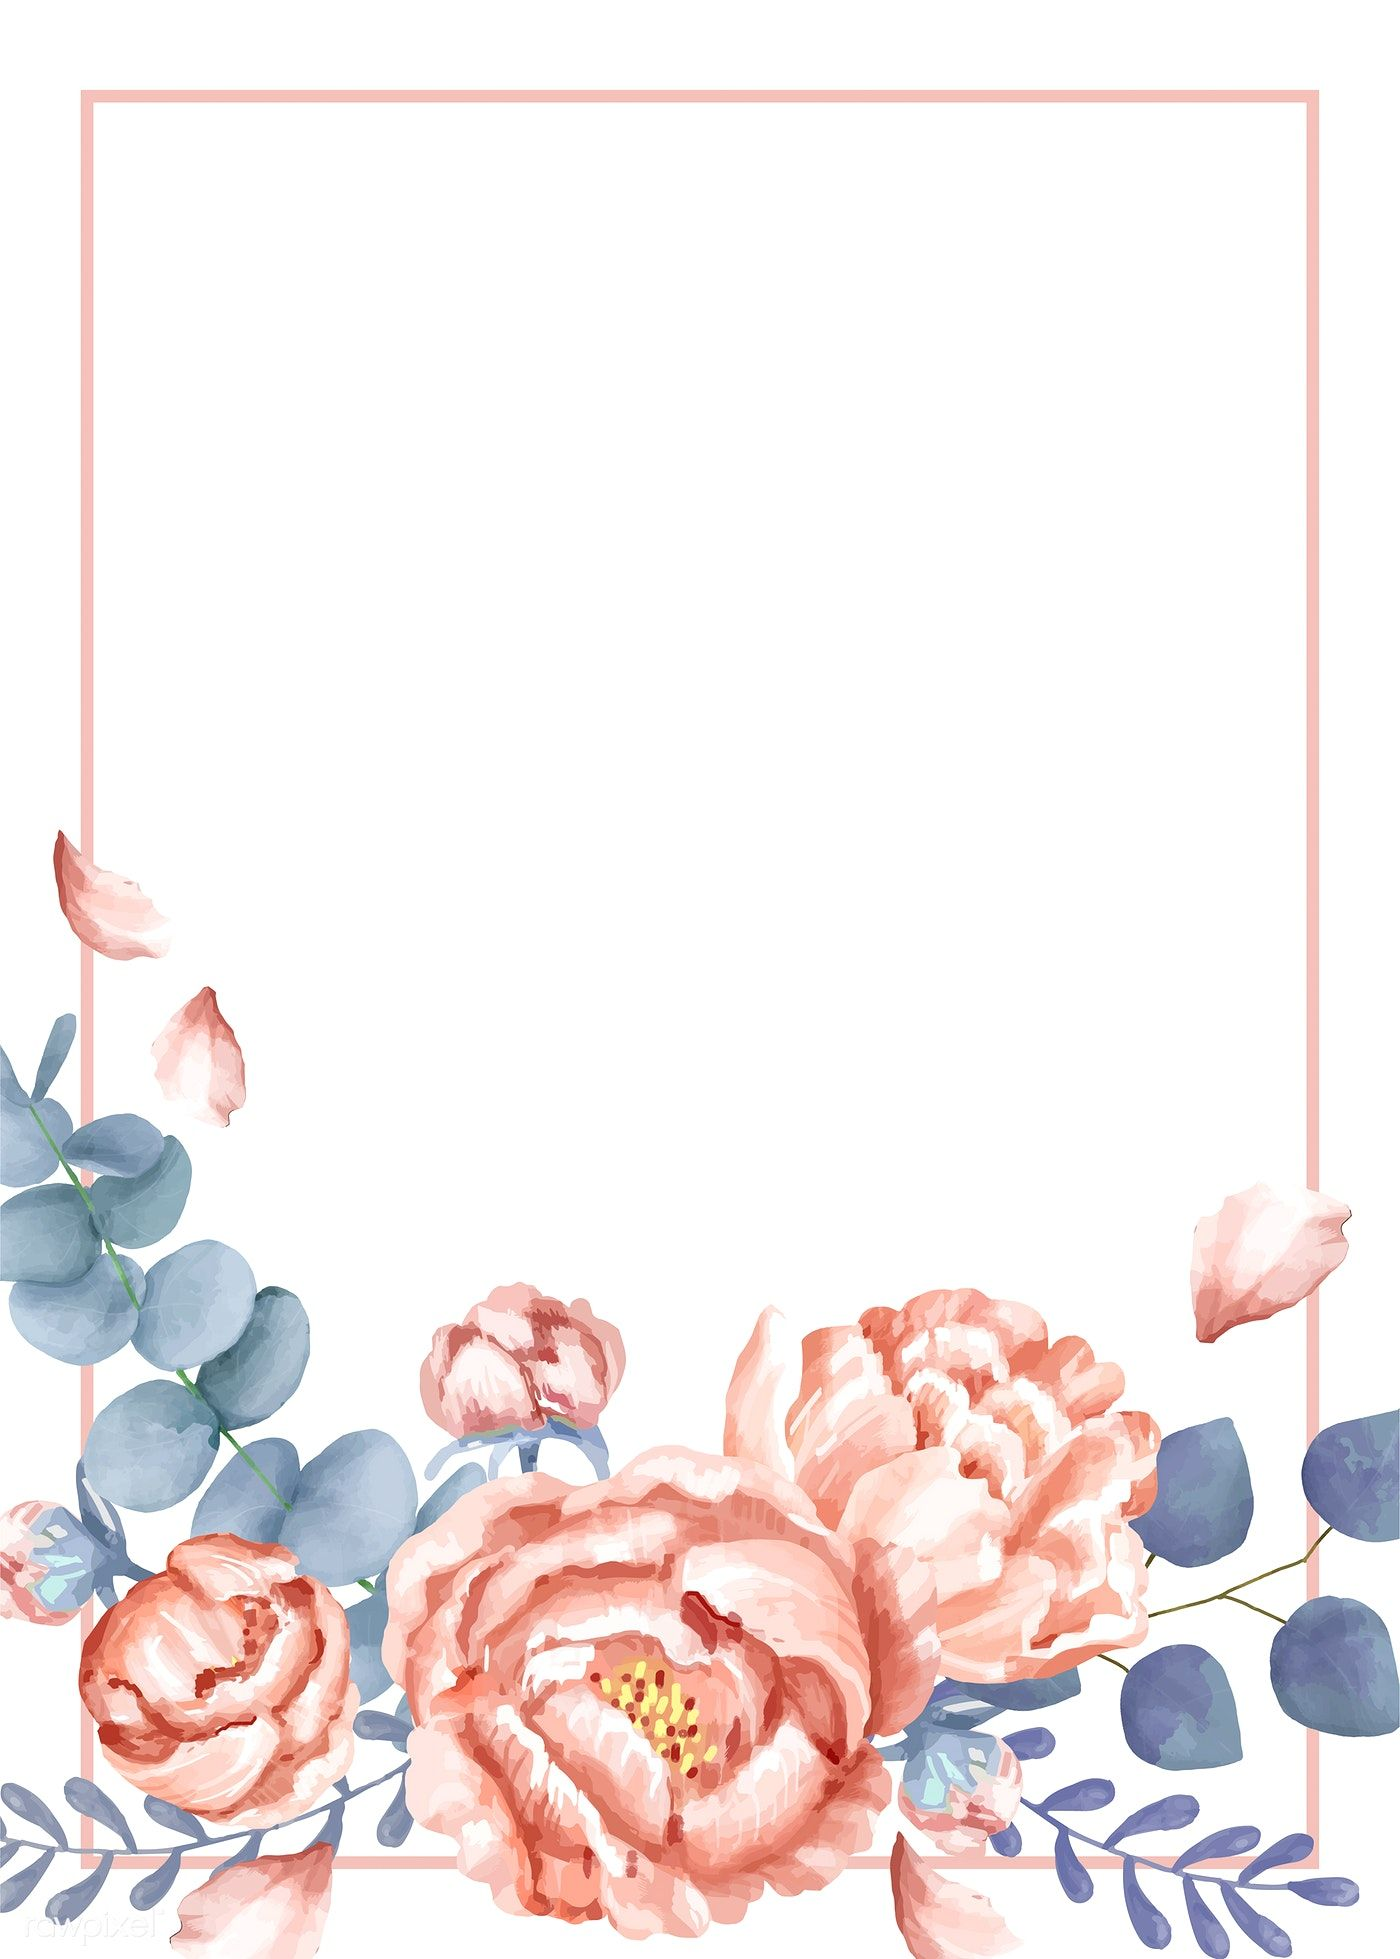 Download Premium Illustration Of Invitation Card With A Floral